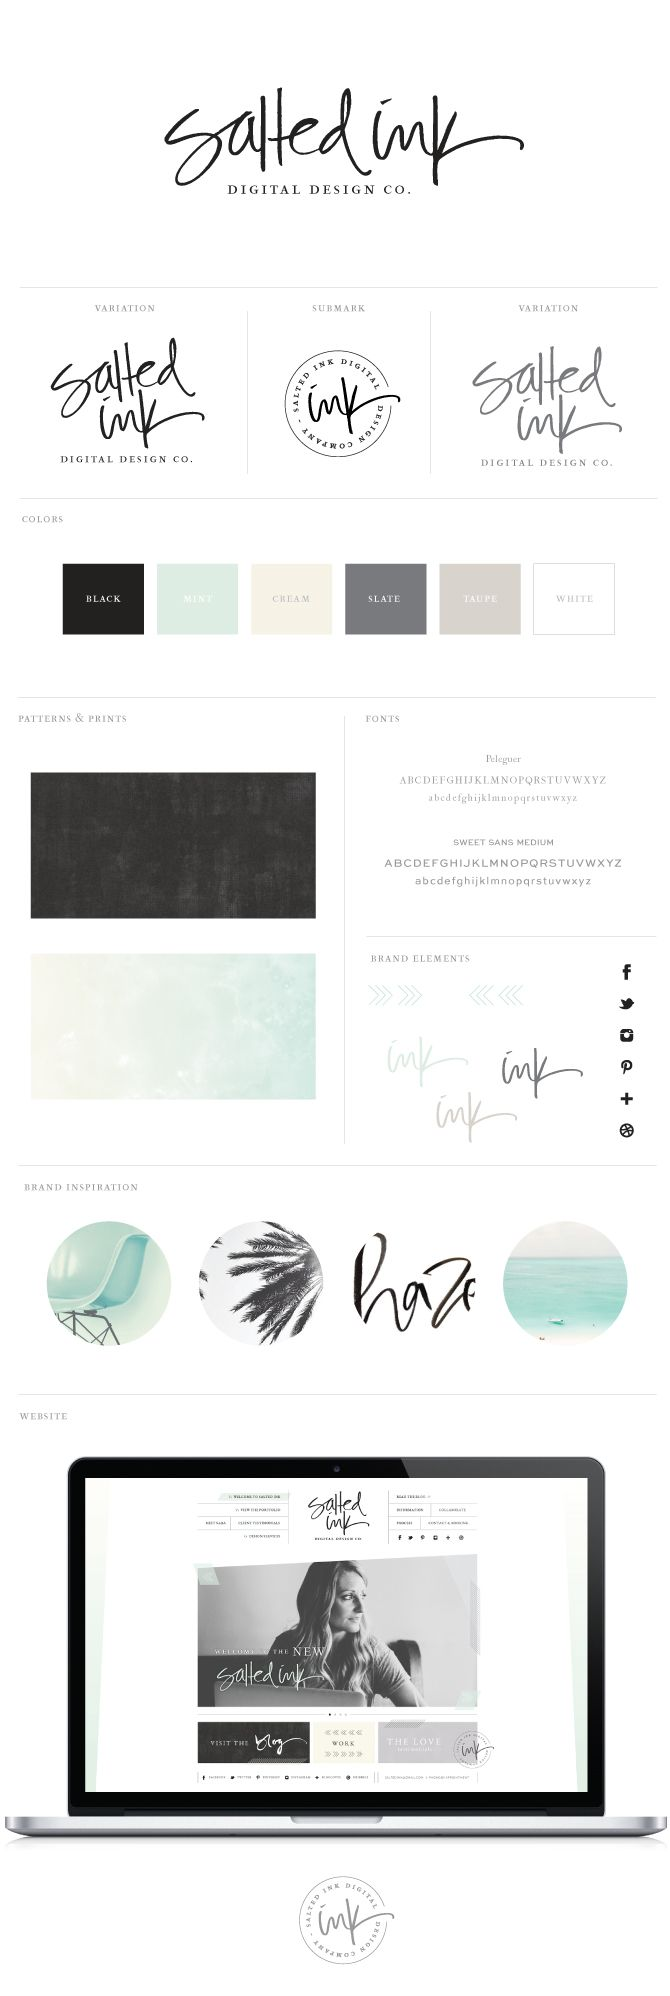 The New Salted Ink Brand Design